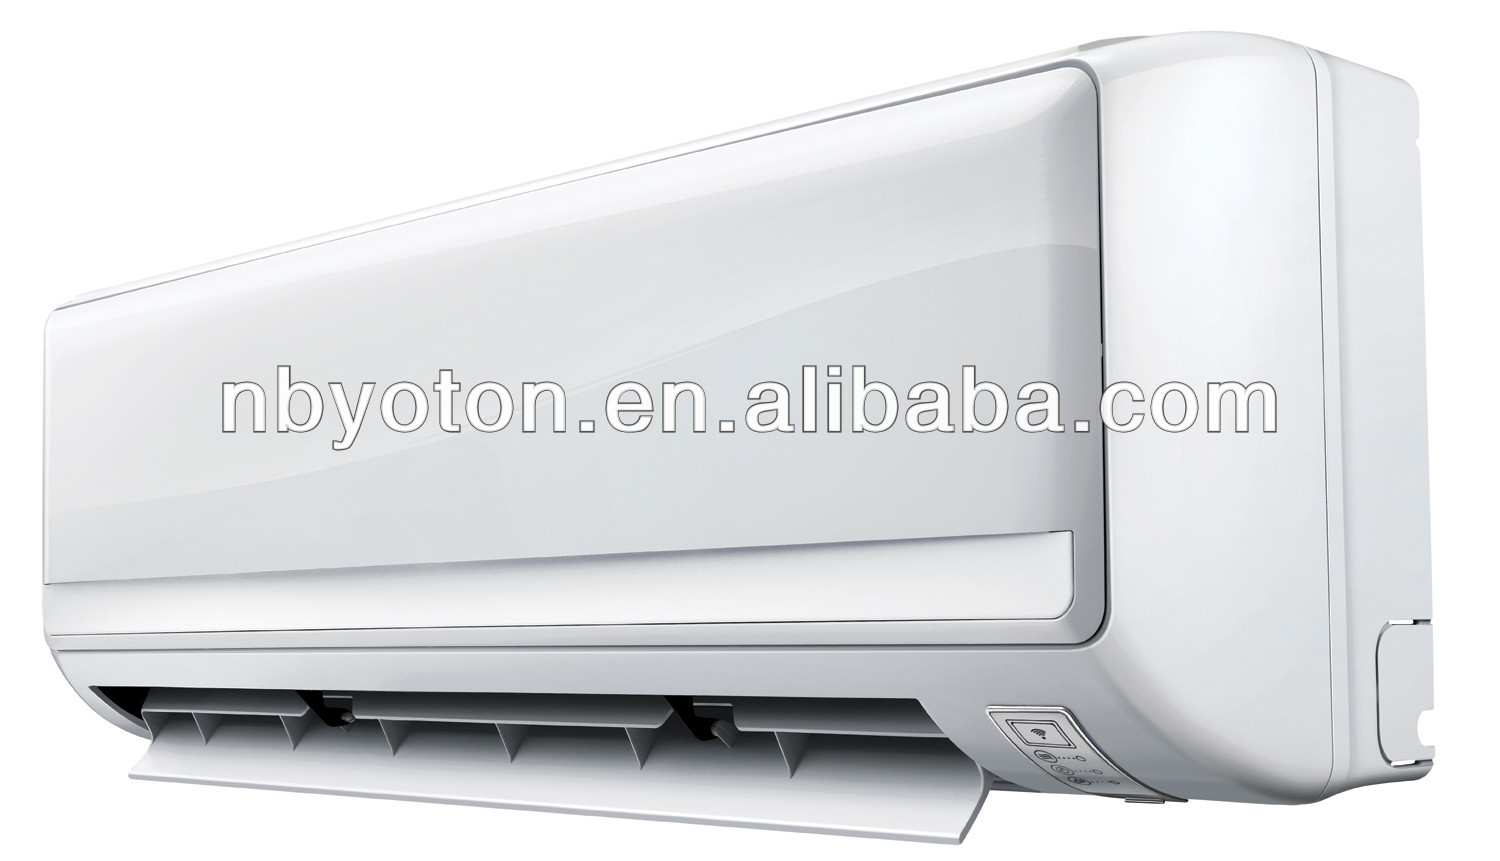 daikin type air conditioner